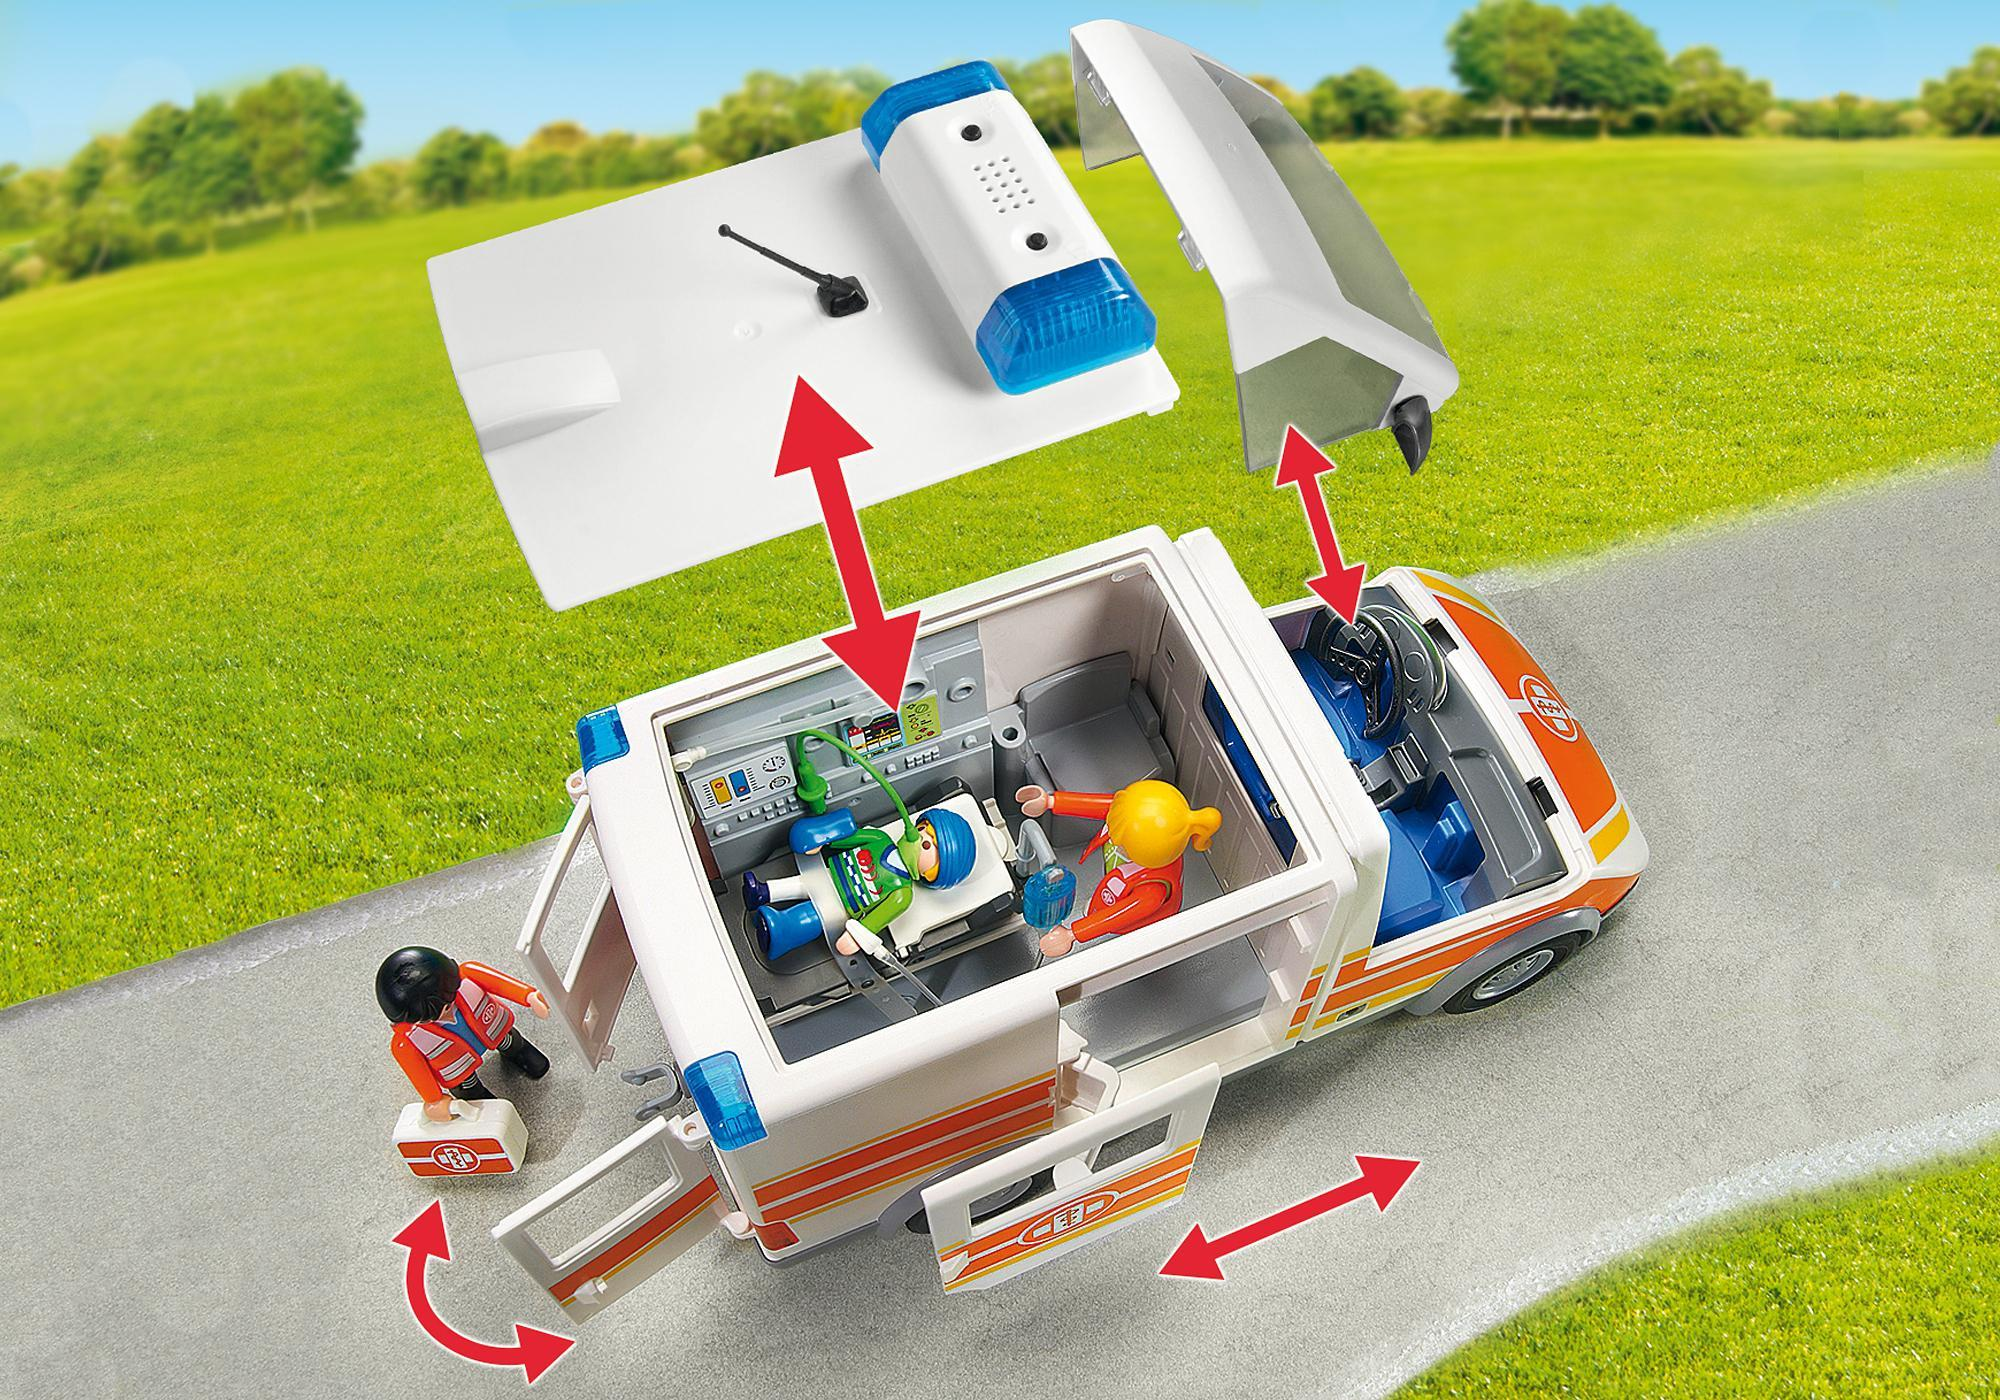 http://media.playmobil.com/i/playmobil/6685_product_extra3/Ambulance with Lights and Sound